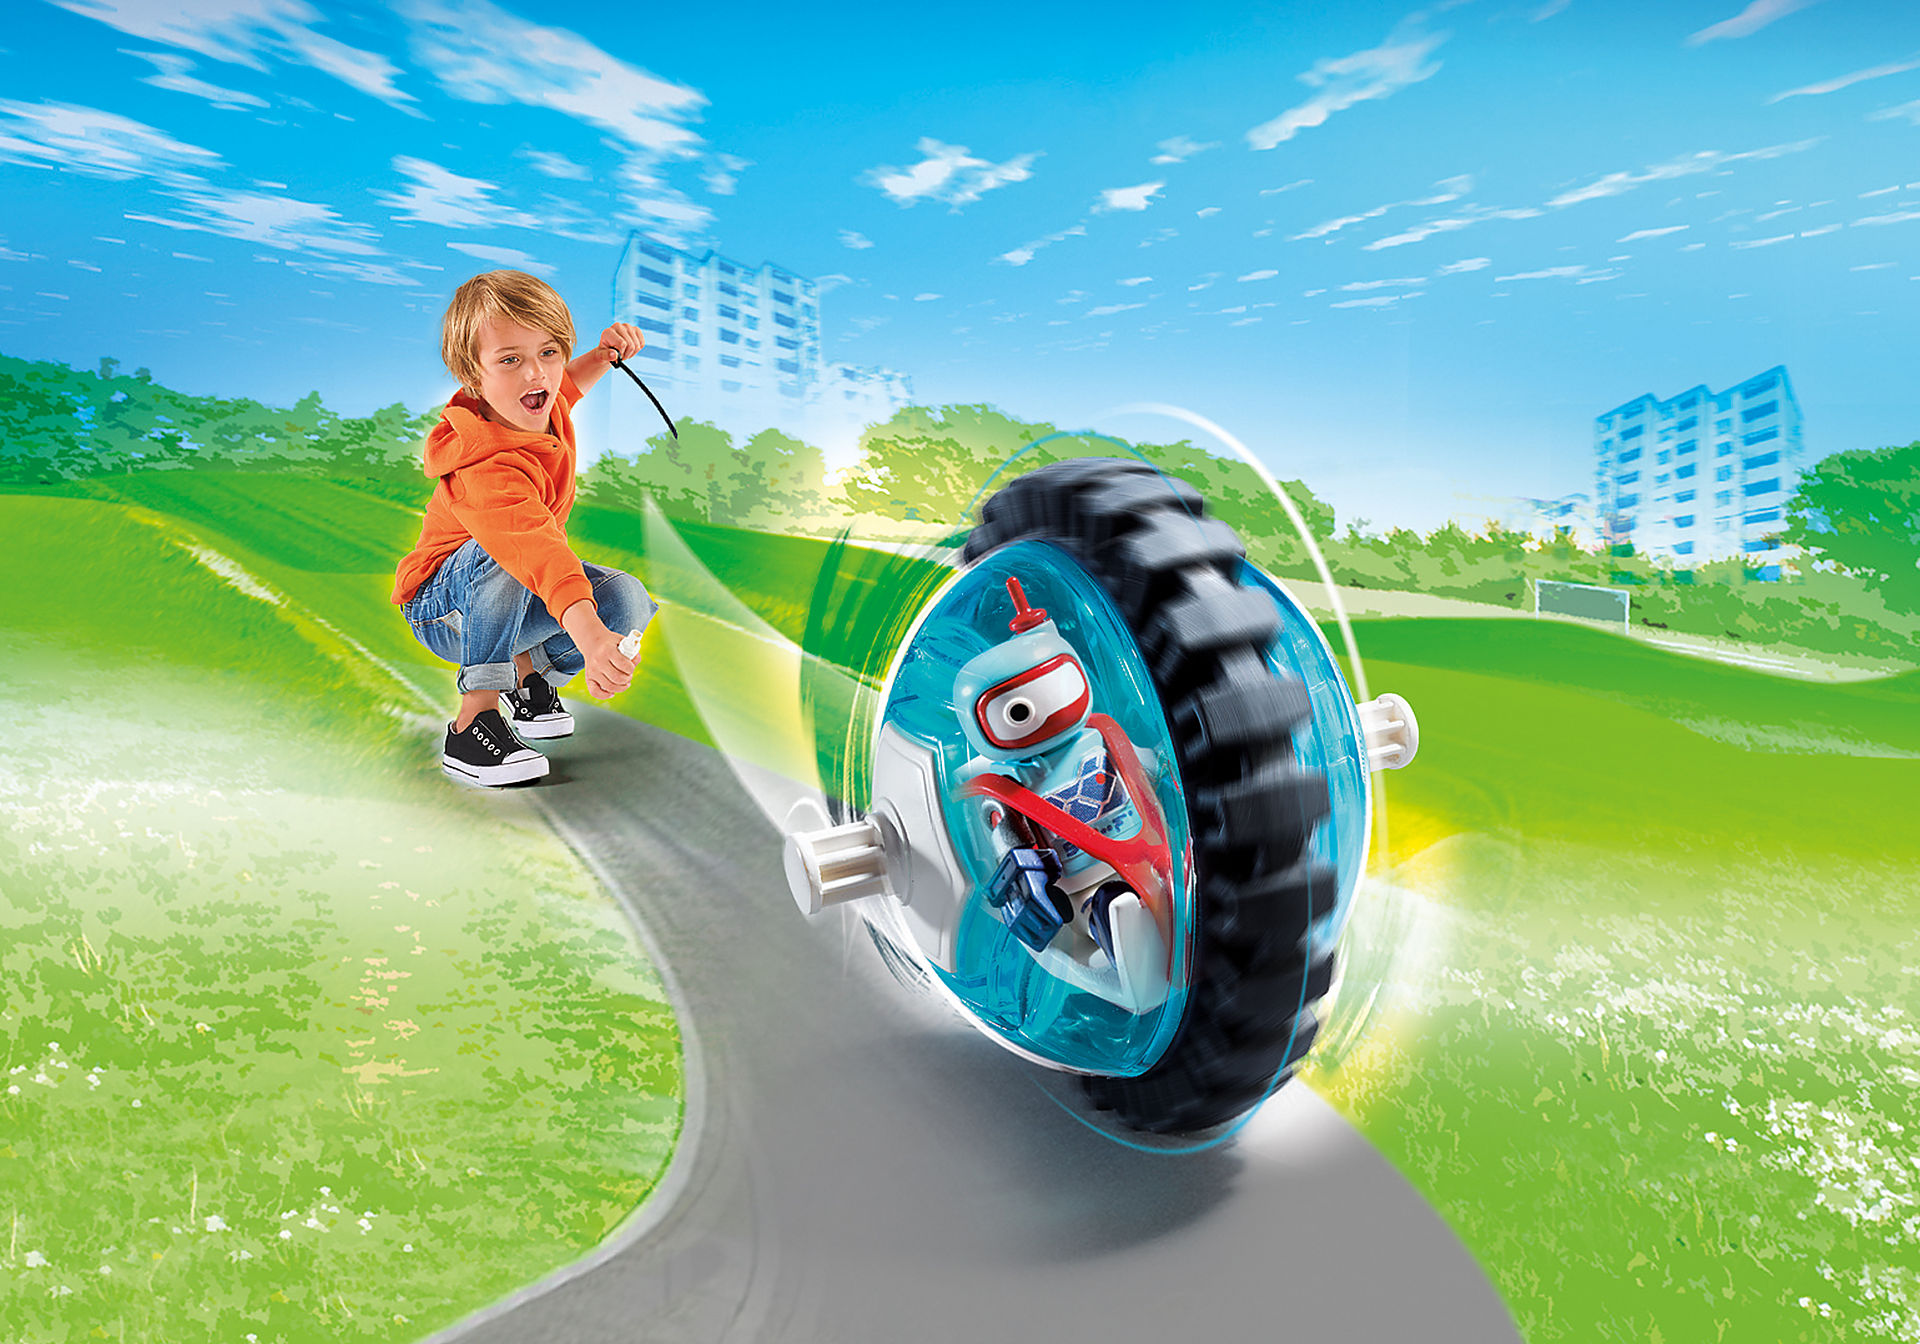 http://media.playmobil.com/i/playmobil/9204_product_detail/Blue Roller Racer